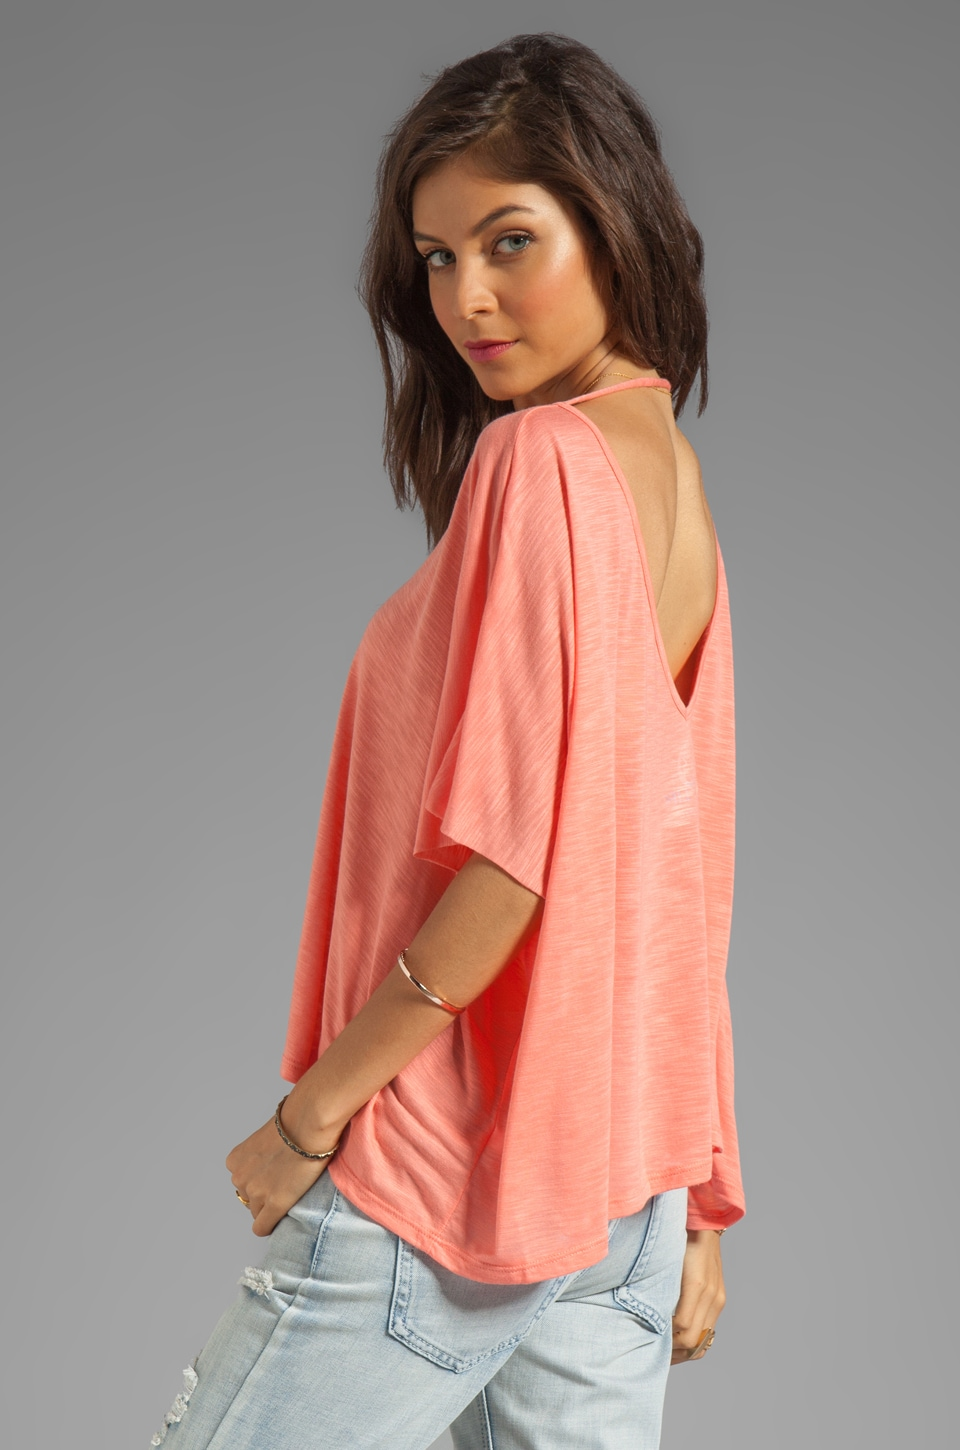 Blue Life Cropped Double V Neck Top in Mesa